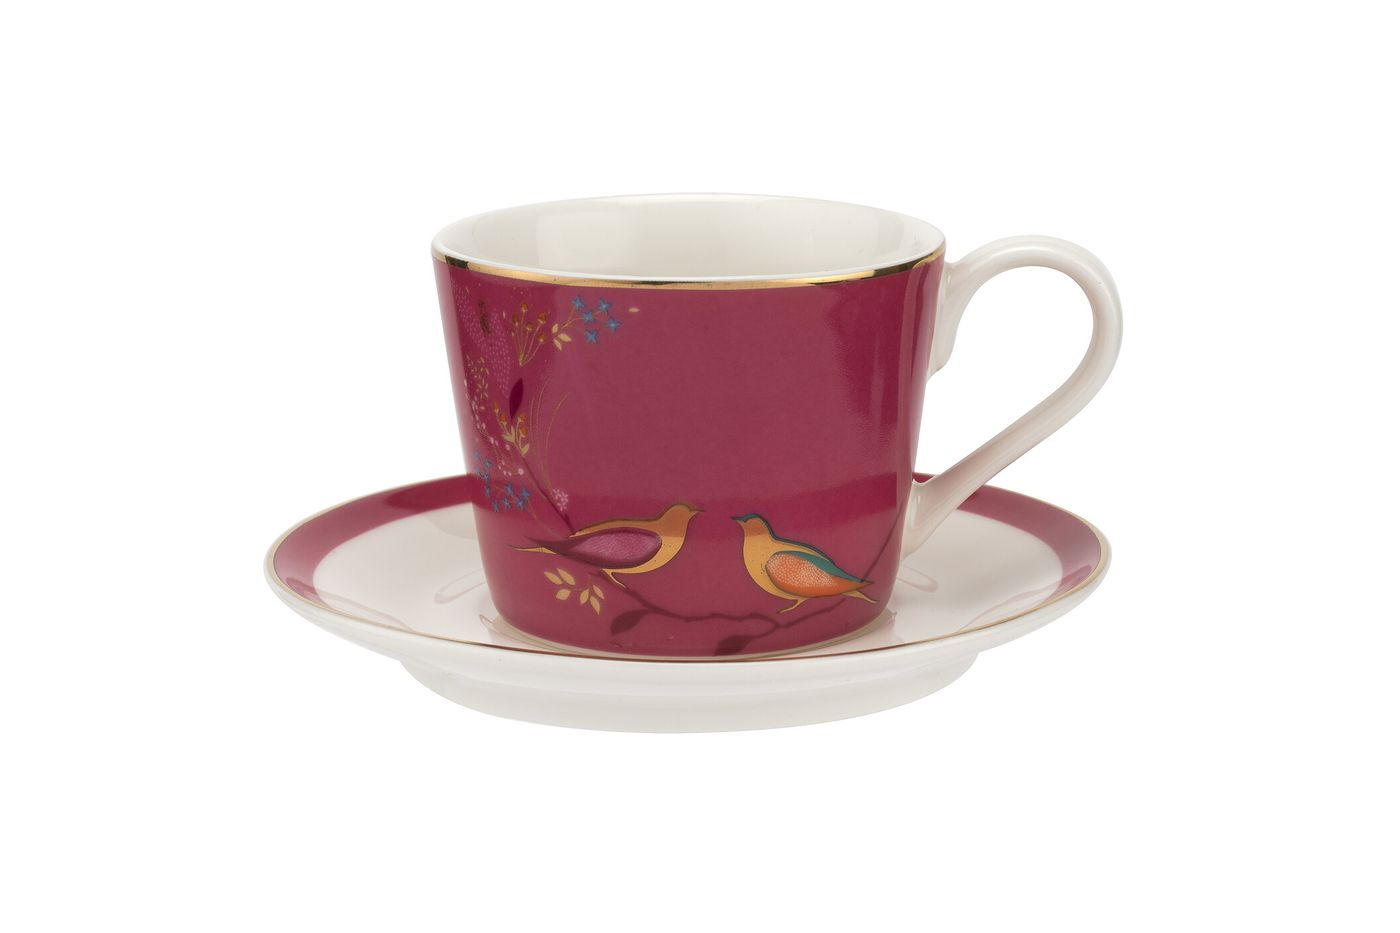 Sara Miller London for Portmeirion Chelsea Collection Espresso Cup & Saucer - Set of 4 0.11l thumb 5